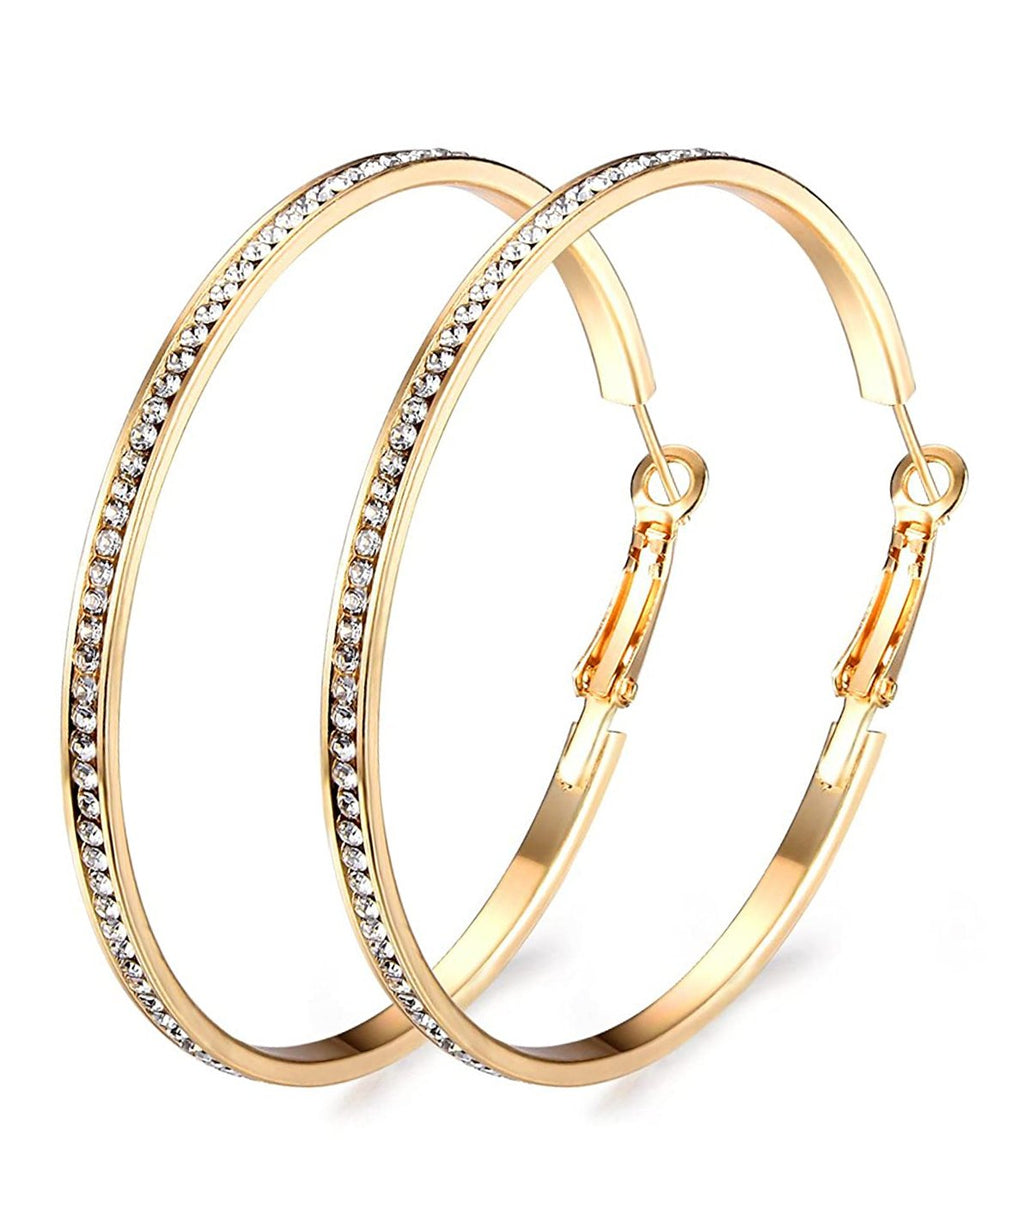 "2"" Pave Hoop Earring With Crystals in 18K Gold Plated"